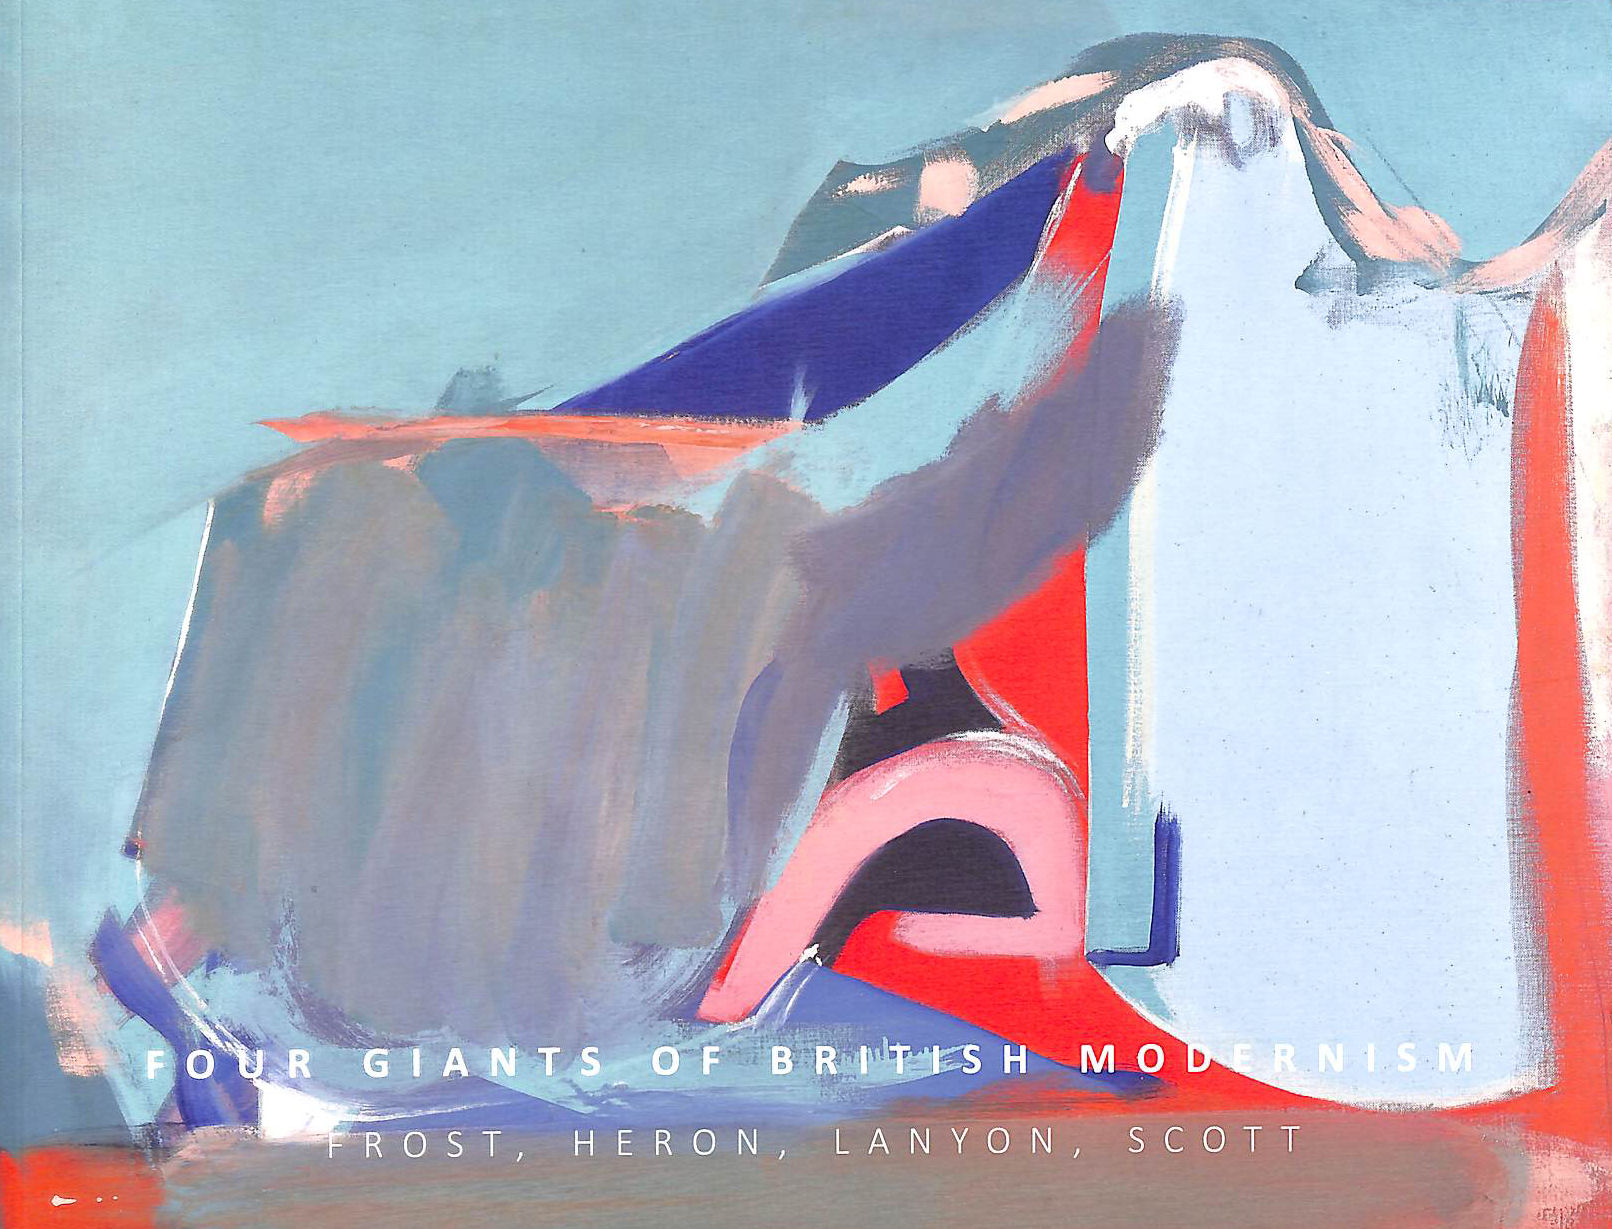 Image for Four Giants of British Modernism, Frost, Heron, Lanyon, Scott